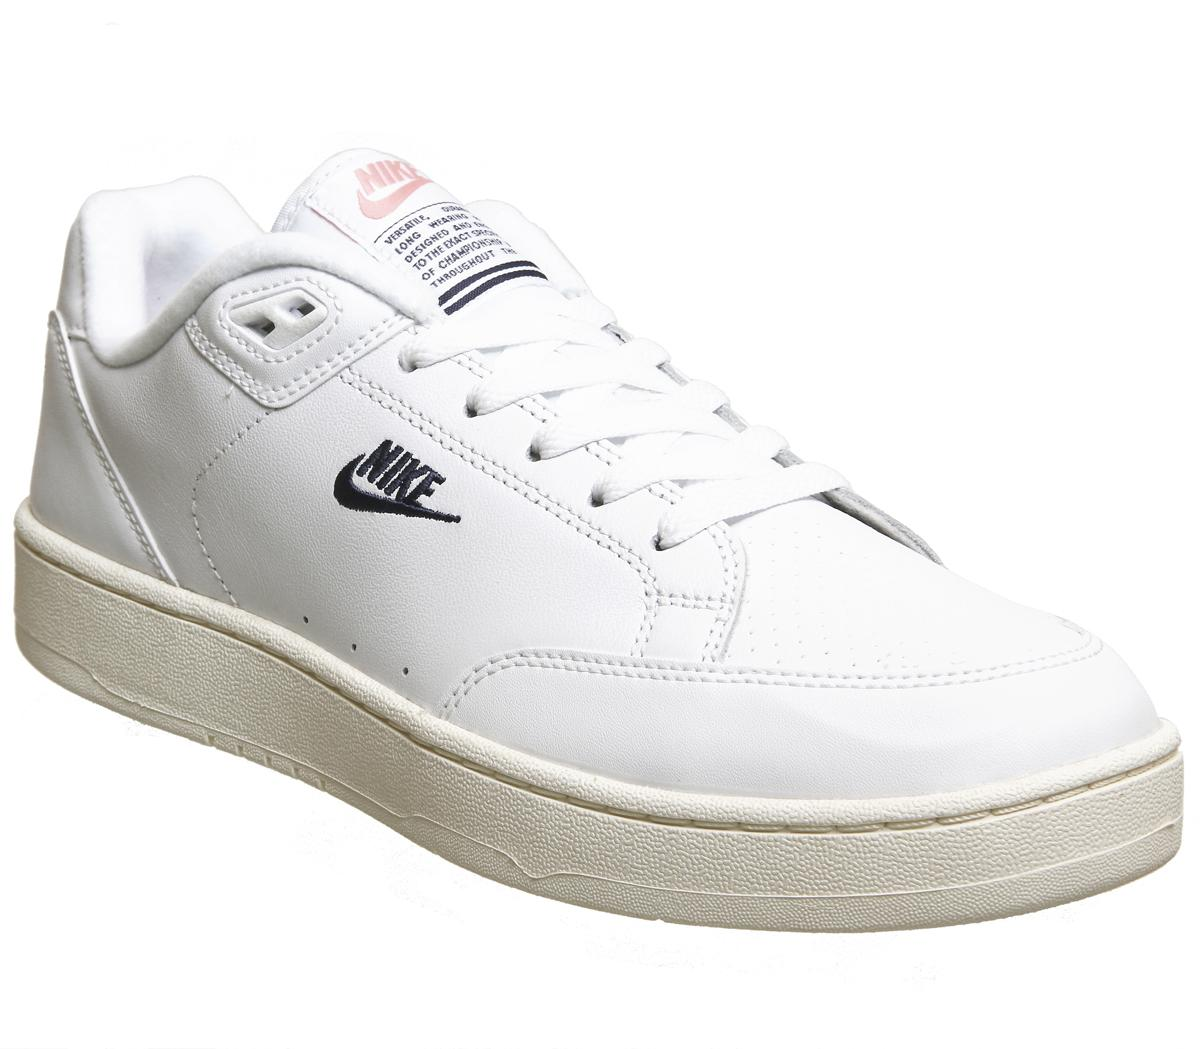 Nike Grandstand 2 White Navy - His trainers